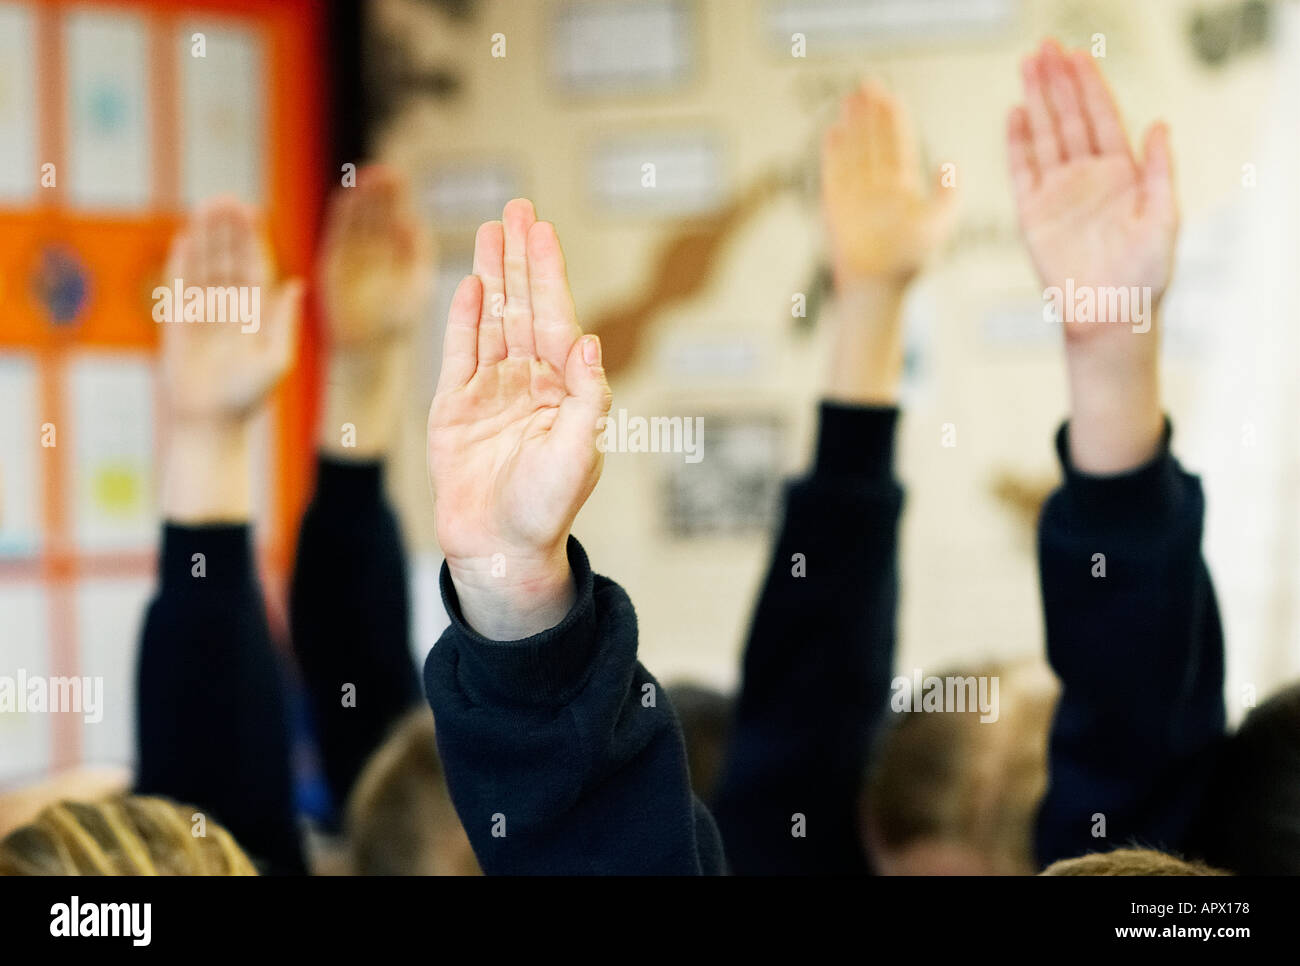 School children with hands up in the air wanting to answer a question - Stock Image